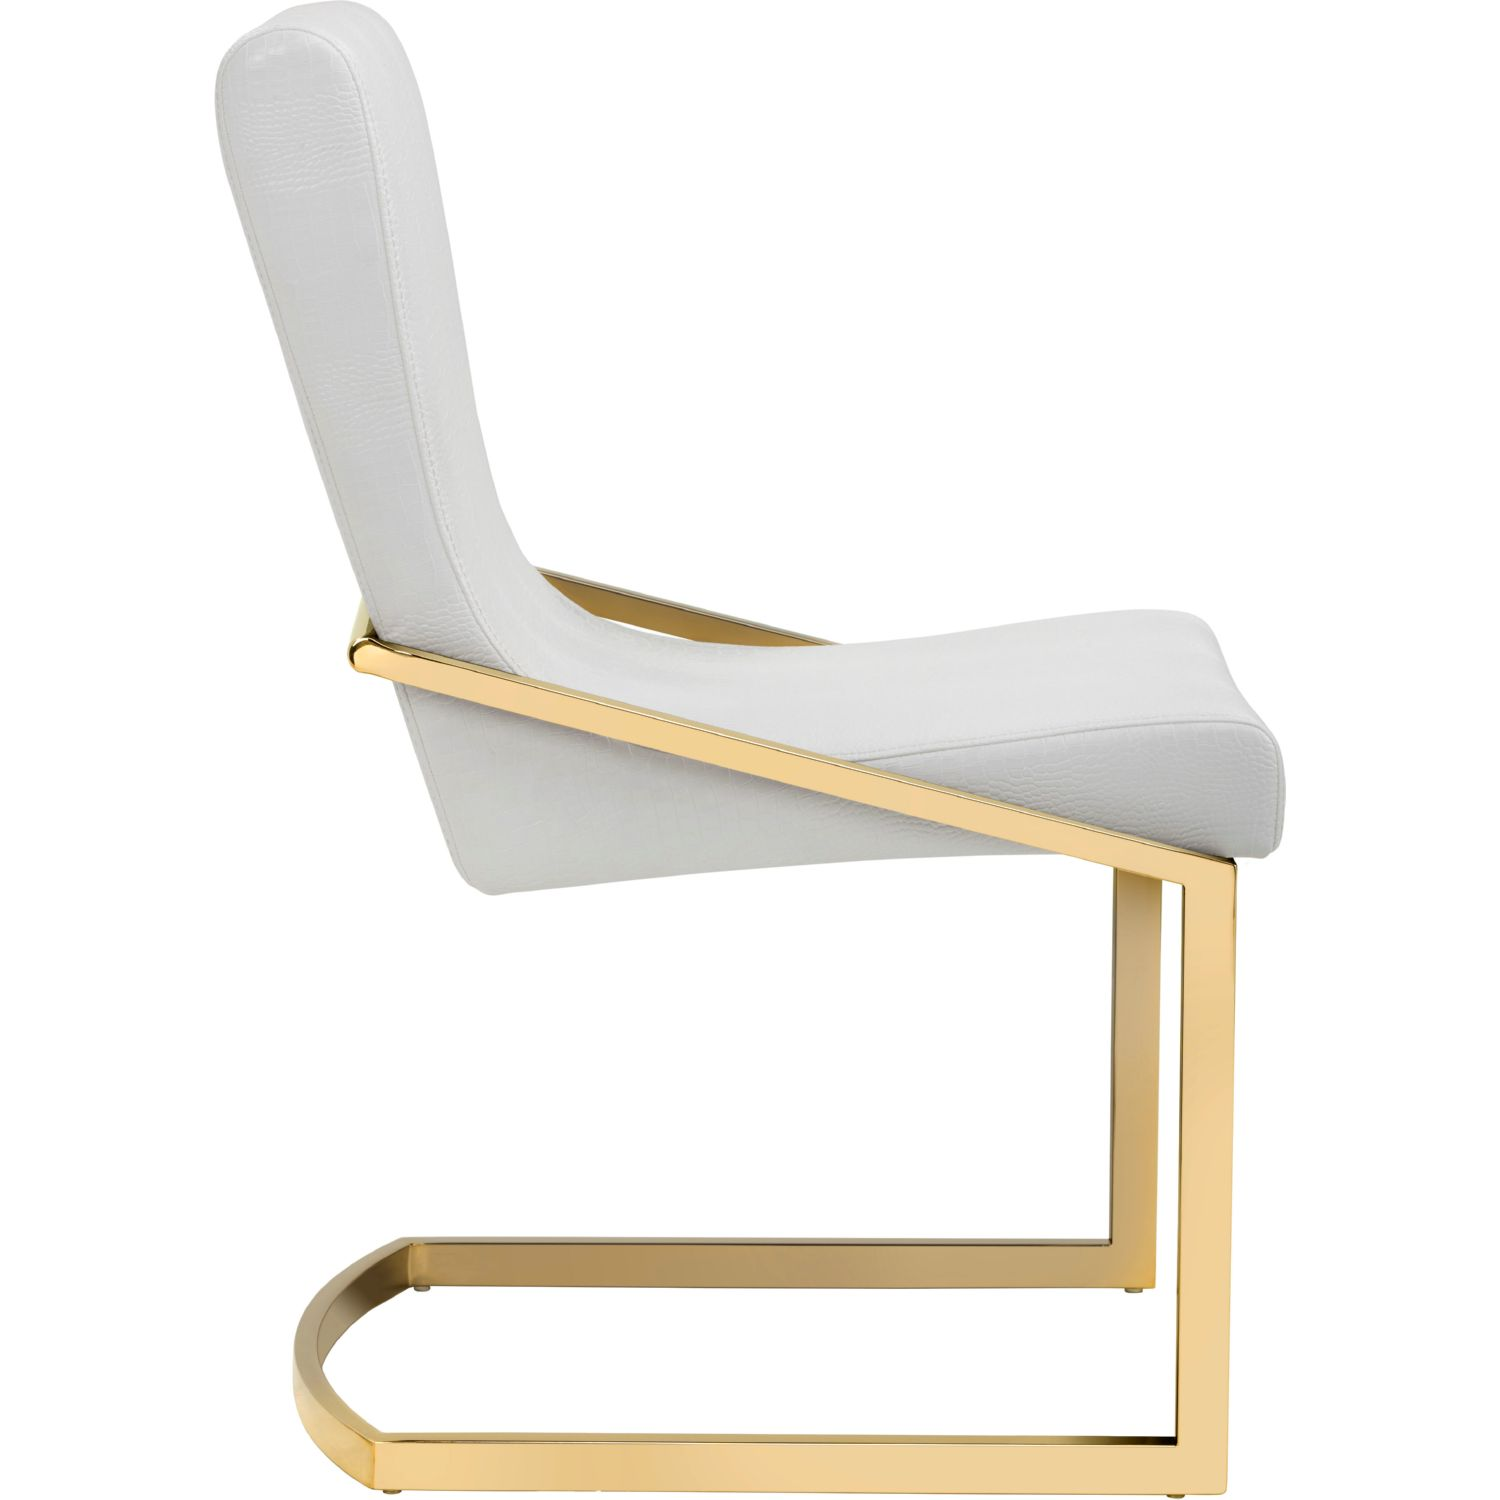 gold dining chairs pink chair club penguin sunpan 101171 marcelle in white croc leatherette on yellow stainless set of 2